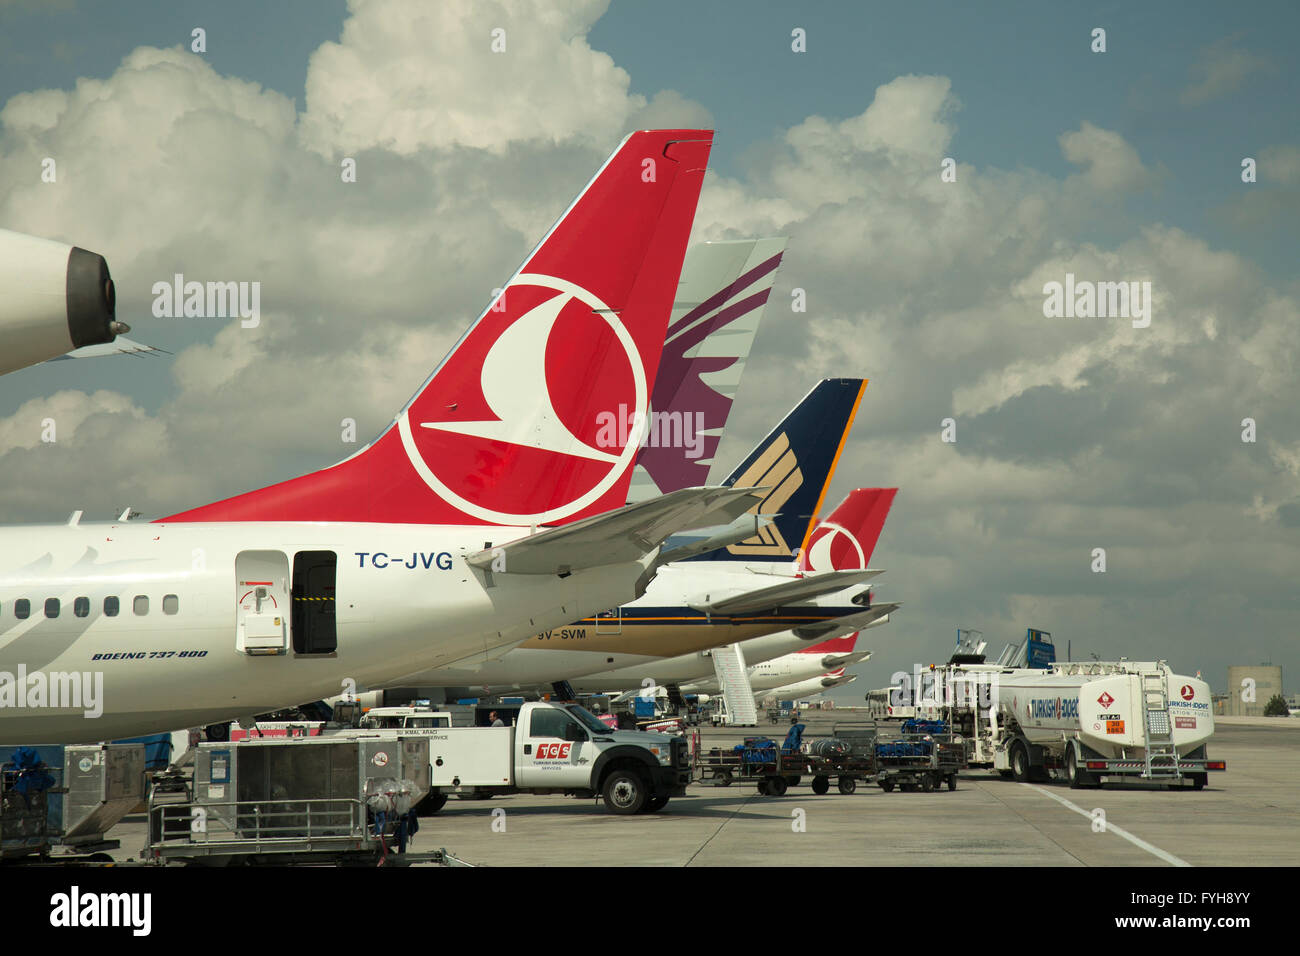 Airliners on the tarmac at Istanbul Airport, Turkey.  Aircraft from Turkish Airlines, Qatar Airlines, and Singapore - Stock Image